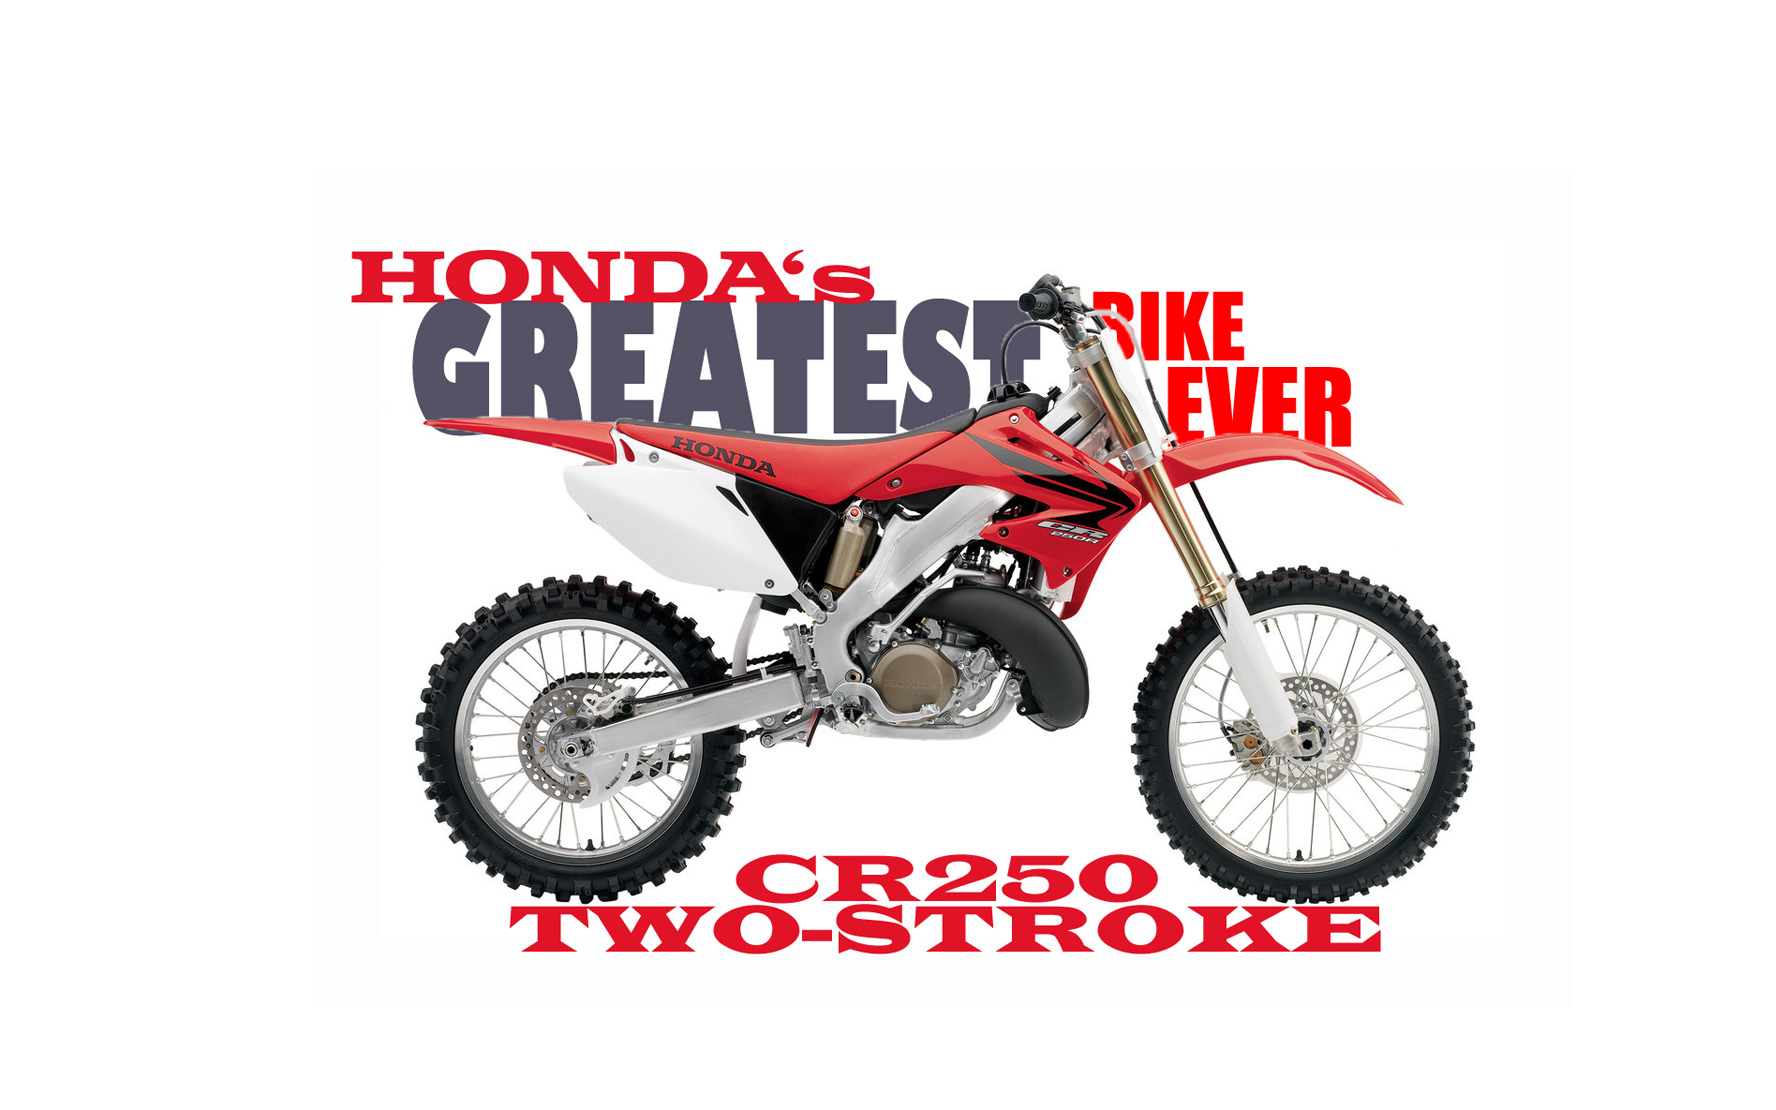 Honda S Greatest Bike The Cr250r Two Stroke